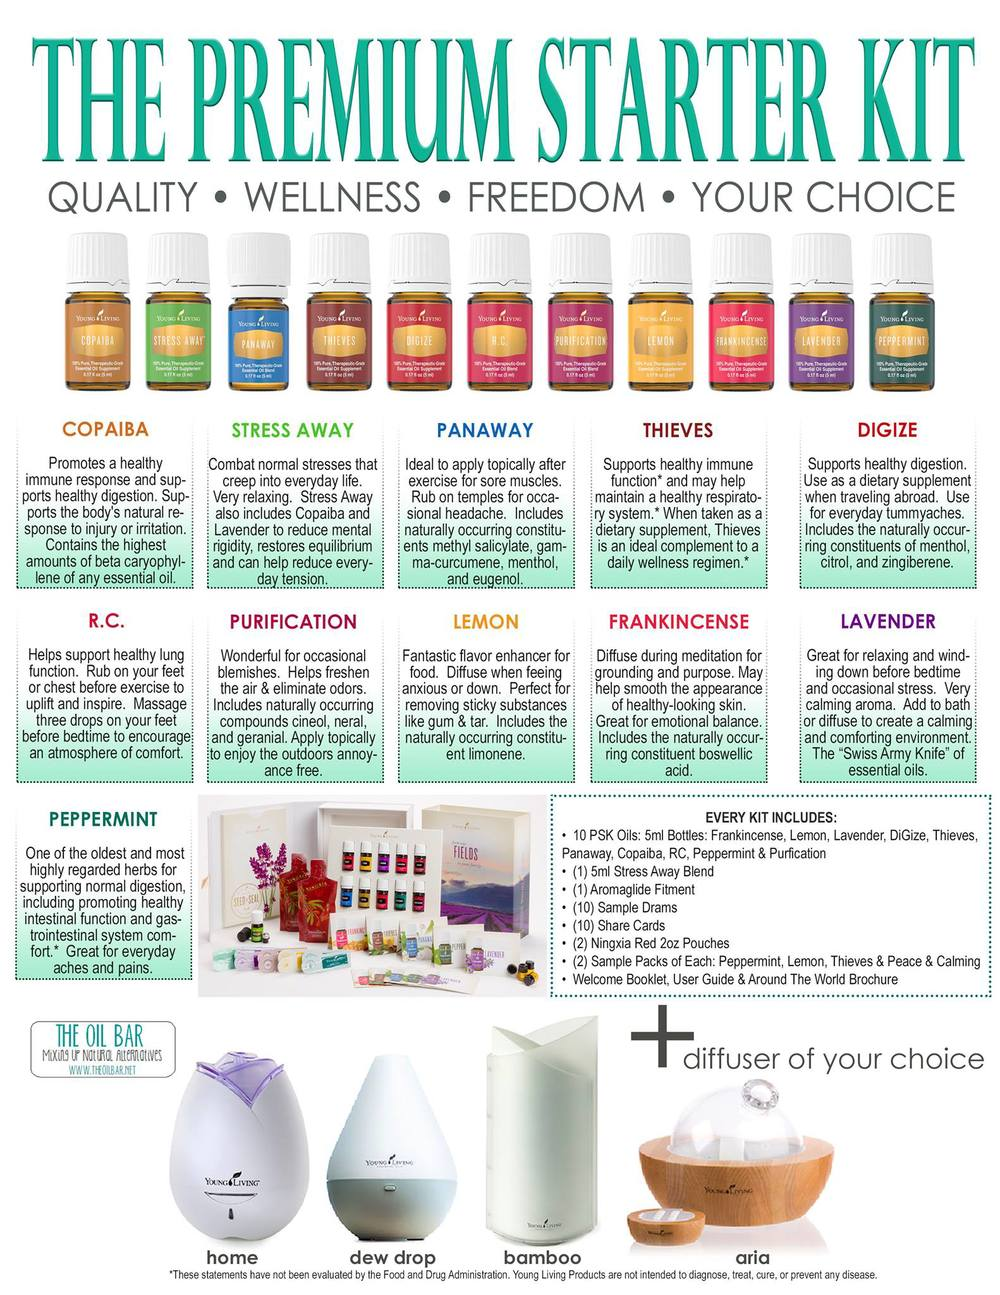 "THIS PREMIUM STARTER KIT CAN BE PURCHASED AT A REDUCED PRICE WHEN YOU CHOOSE TO BE A WHOLESALE CUSTOMER ONLY. IT INCLUDES THE ""EVERYDAY OIL COLLECTION"" AND CAN BE USED FOR RELAXATION, SUPPORTING POSITIVE MOODS SUCH AS DECREASING ANXIETY, STRESS, AND WINDING DOWN FOR BEDTIME + IT ALSO SUPPORTS A HEALTHY IMMUNE SYSTEM & RESPIRATIORY SYSTEM, DIGESTIVE SYSTEM & LUNG FUNCTION + SOOTHS SORE MUSCLES + IMPROVE SKIN BLEMISHES AND TENSION HEADACHES, + ENHANCES FOOD.   YOU WILL GET 10 OILS + 1 BONUS OIL, 10 SAMPLE OILS AND !0 DESCRIPTION CARDS +  A DIFFUSER.  THIS IS A $400 VALUE FOR ONLY $150 THROUGH THE BLUE BUTTONS."